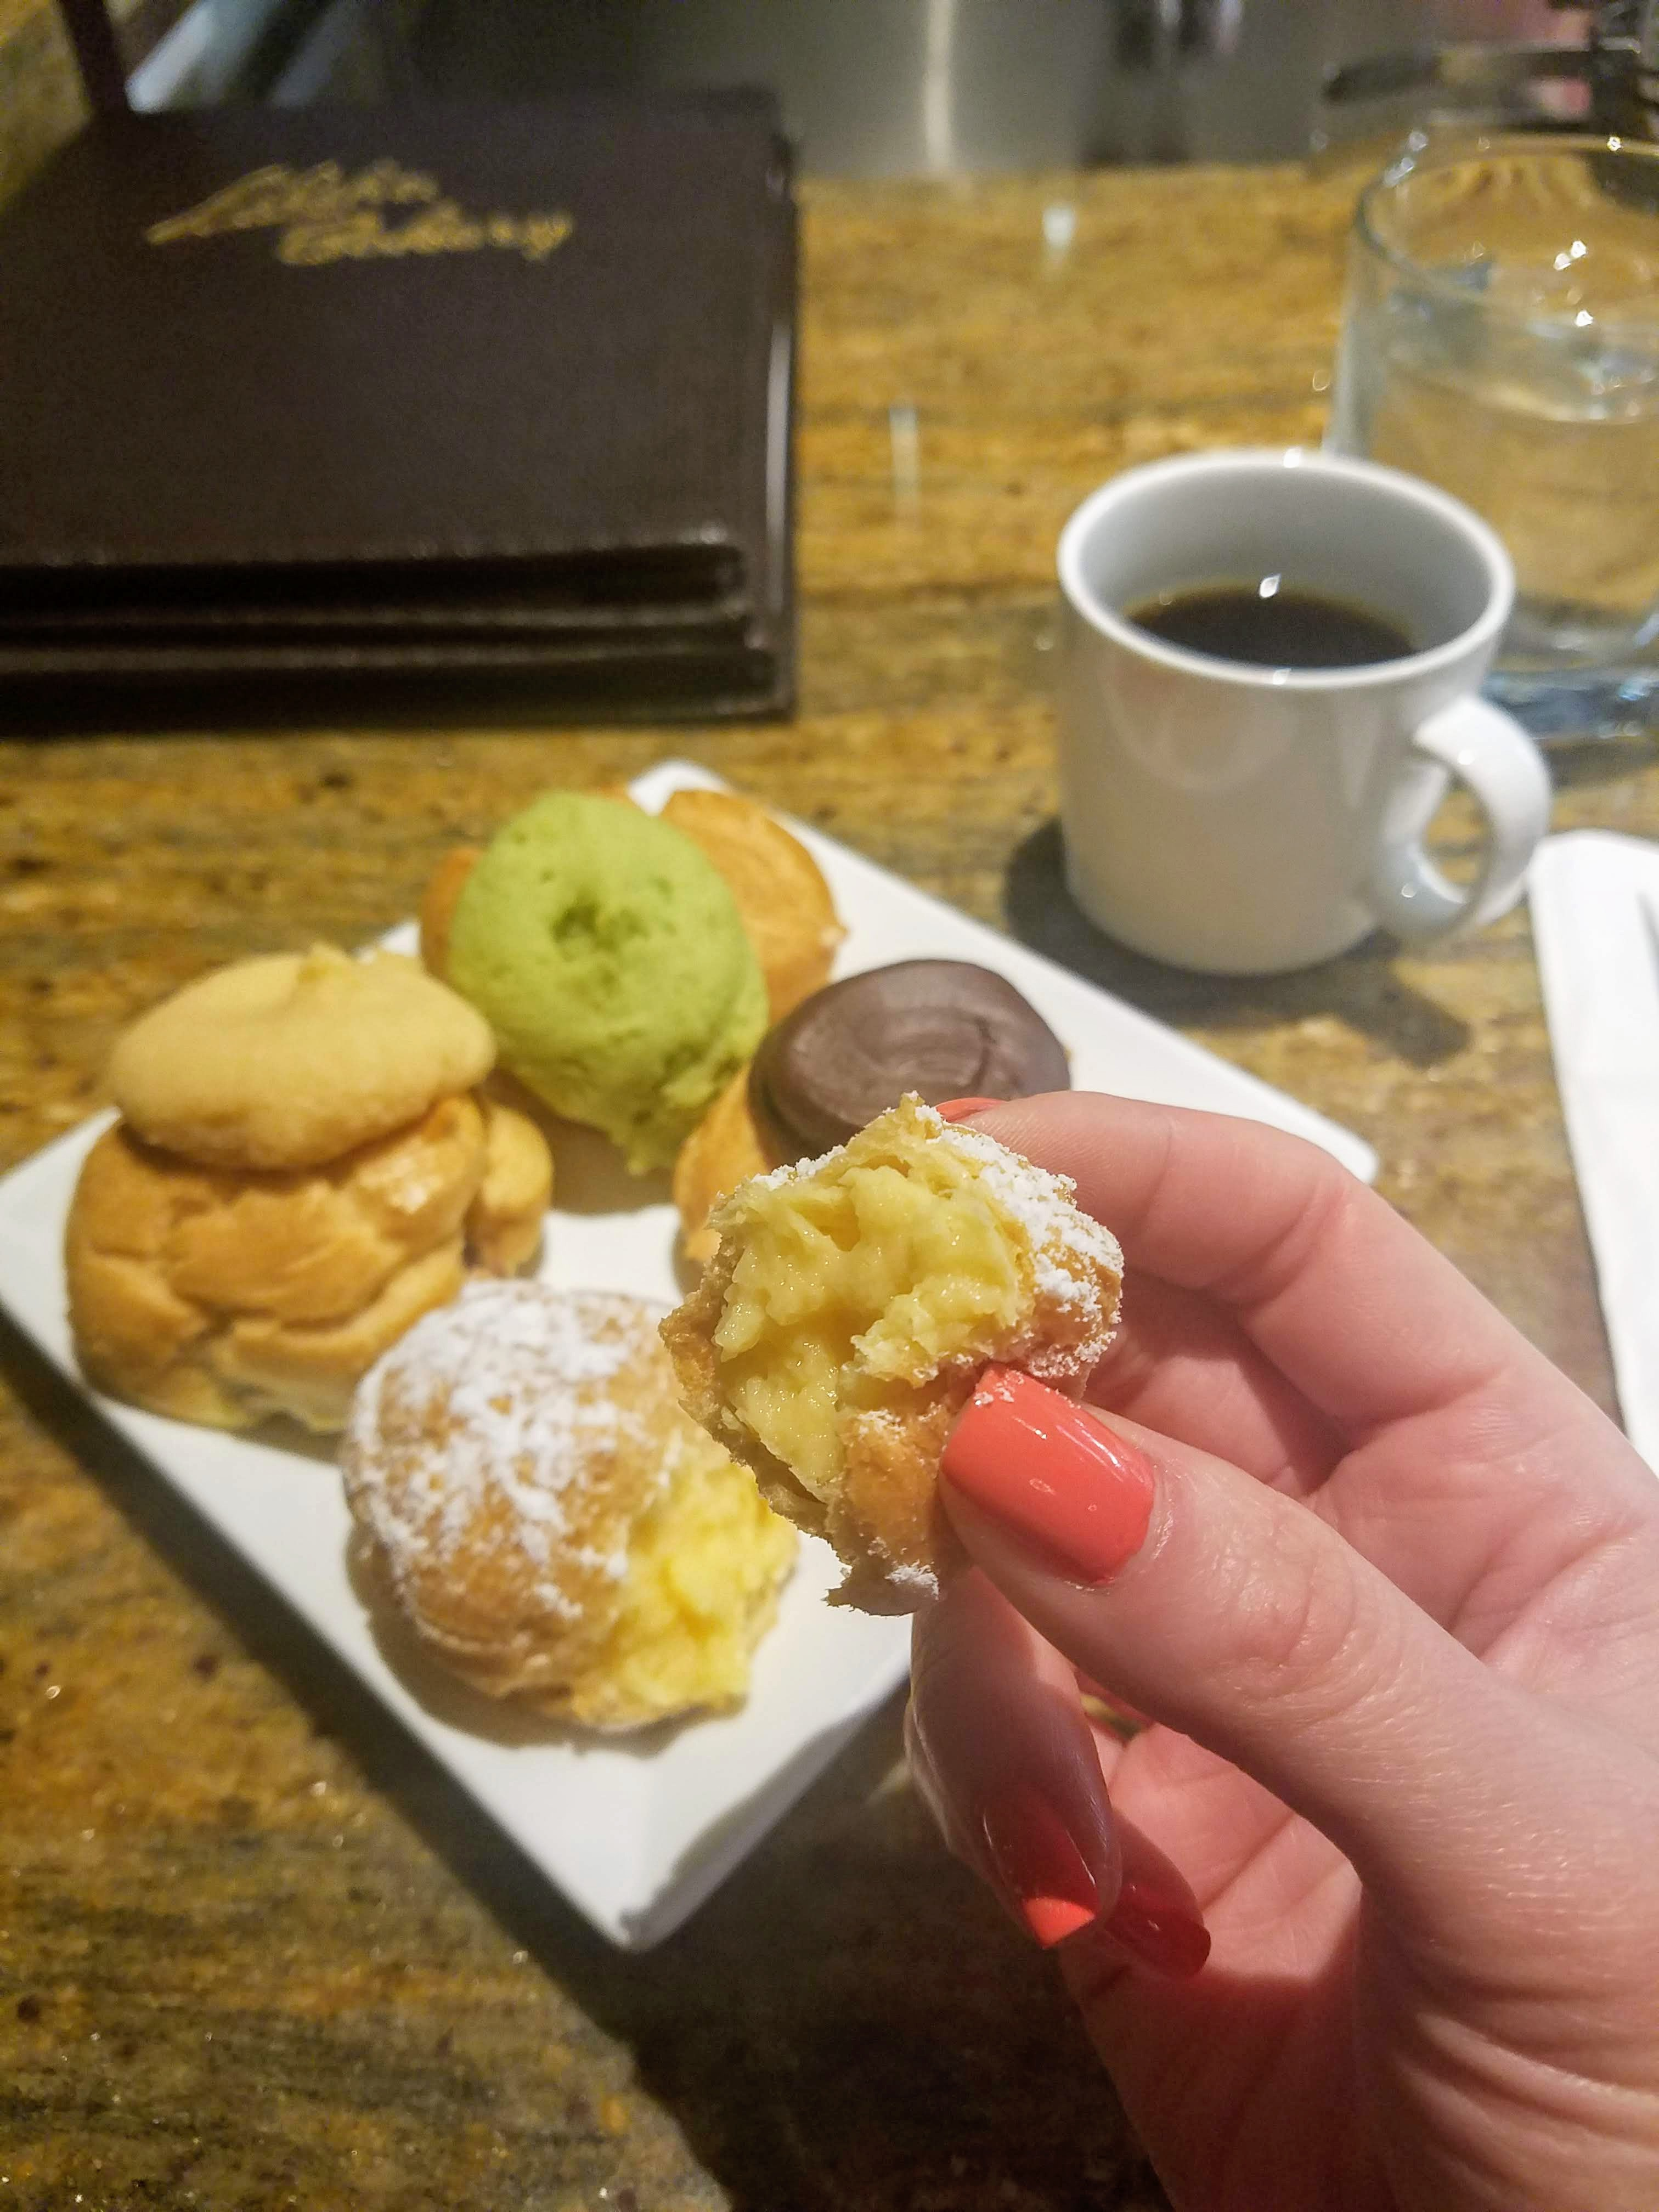 a piece of a cream puff filled with delicious cream. in the background is a plate of cream puffs of various flavors - green tea, chocolate, and coconut